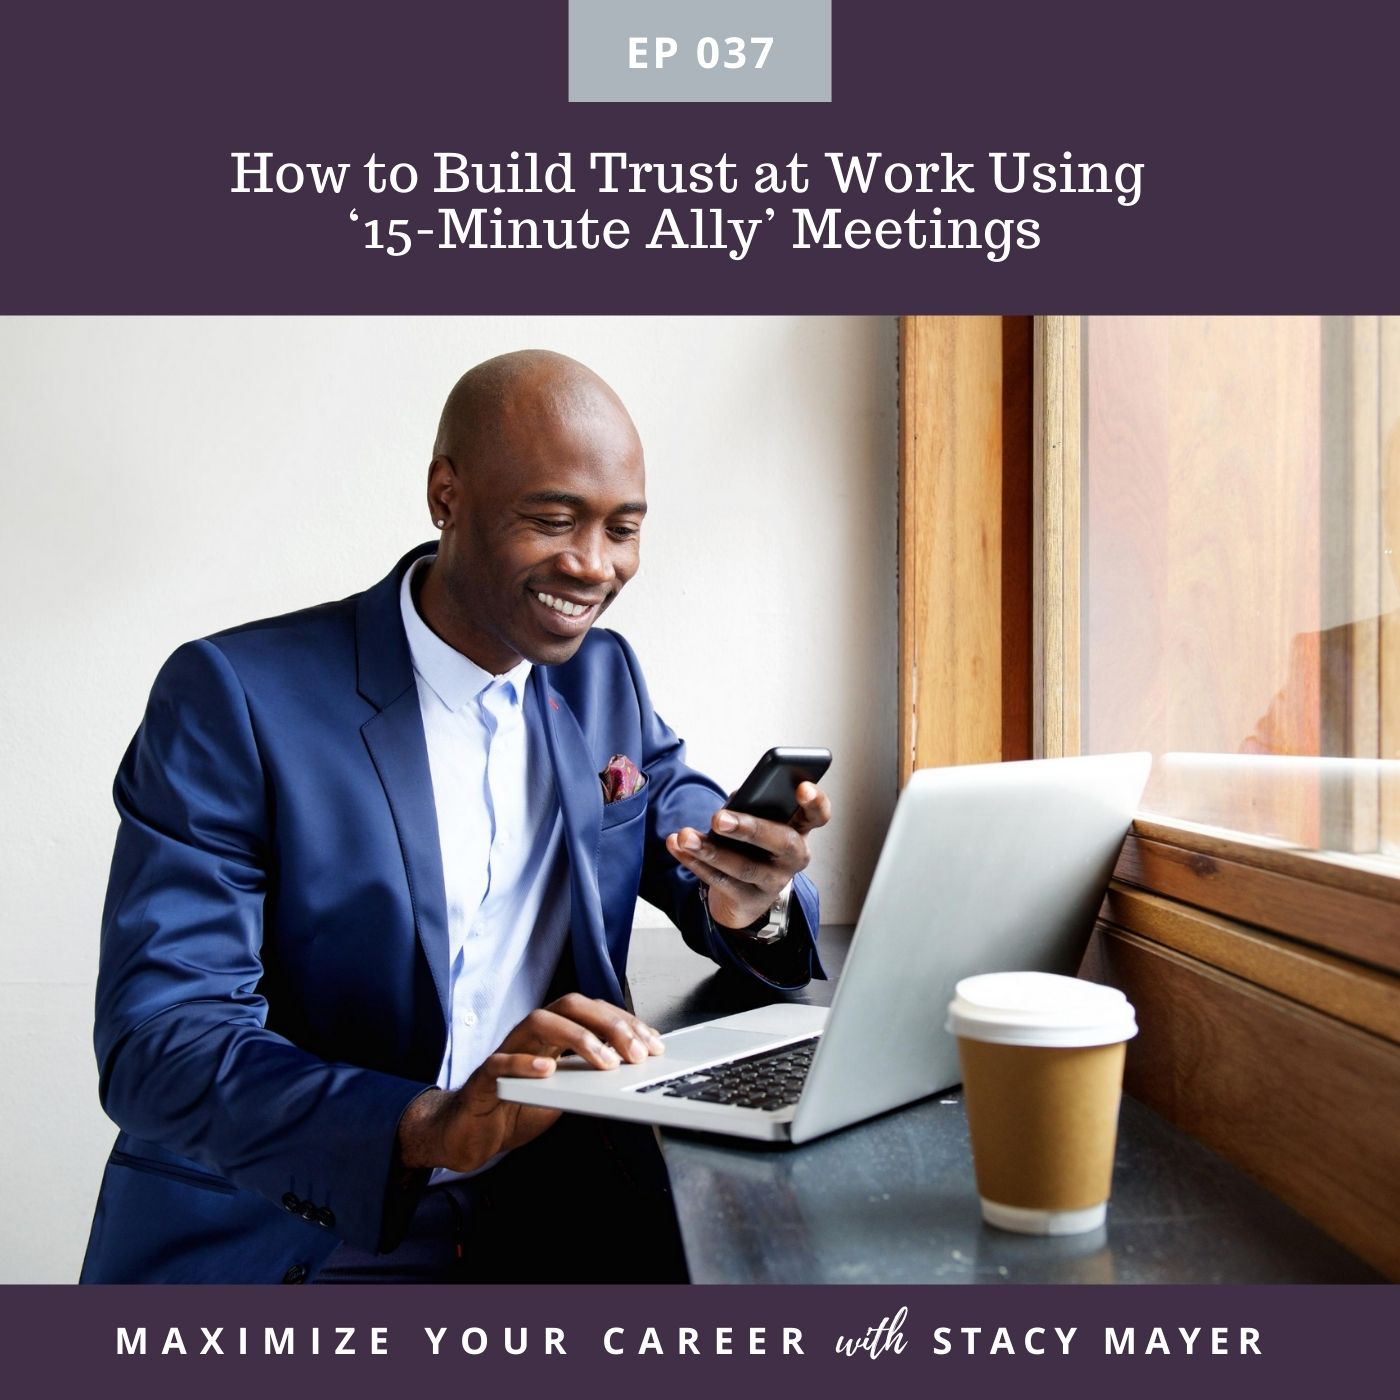 Episode art - How to Build Trust at Work Using 15-minute Ally Meetings